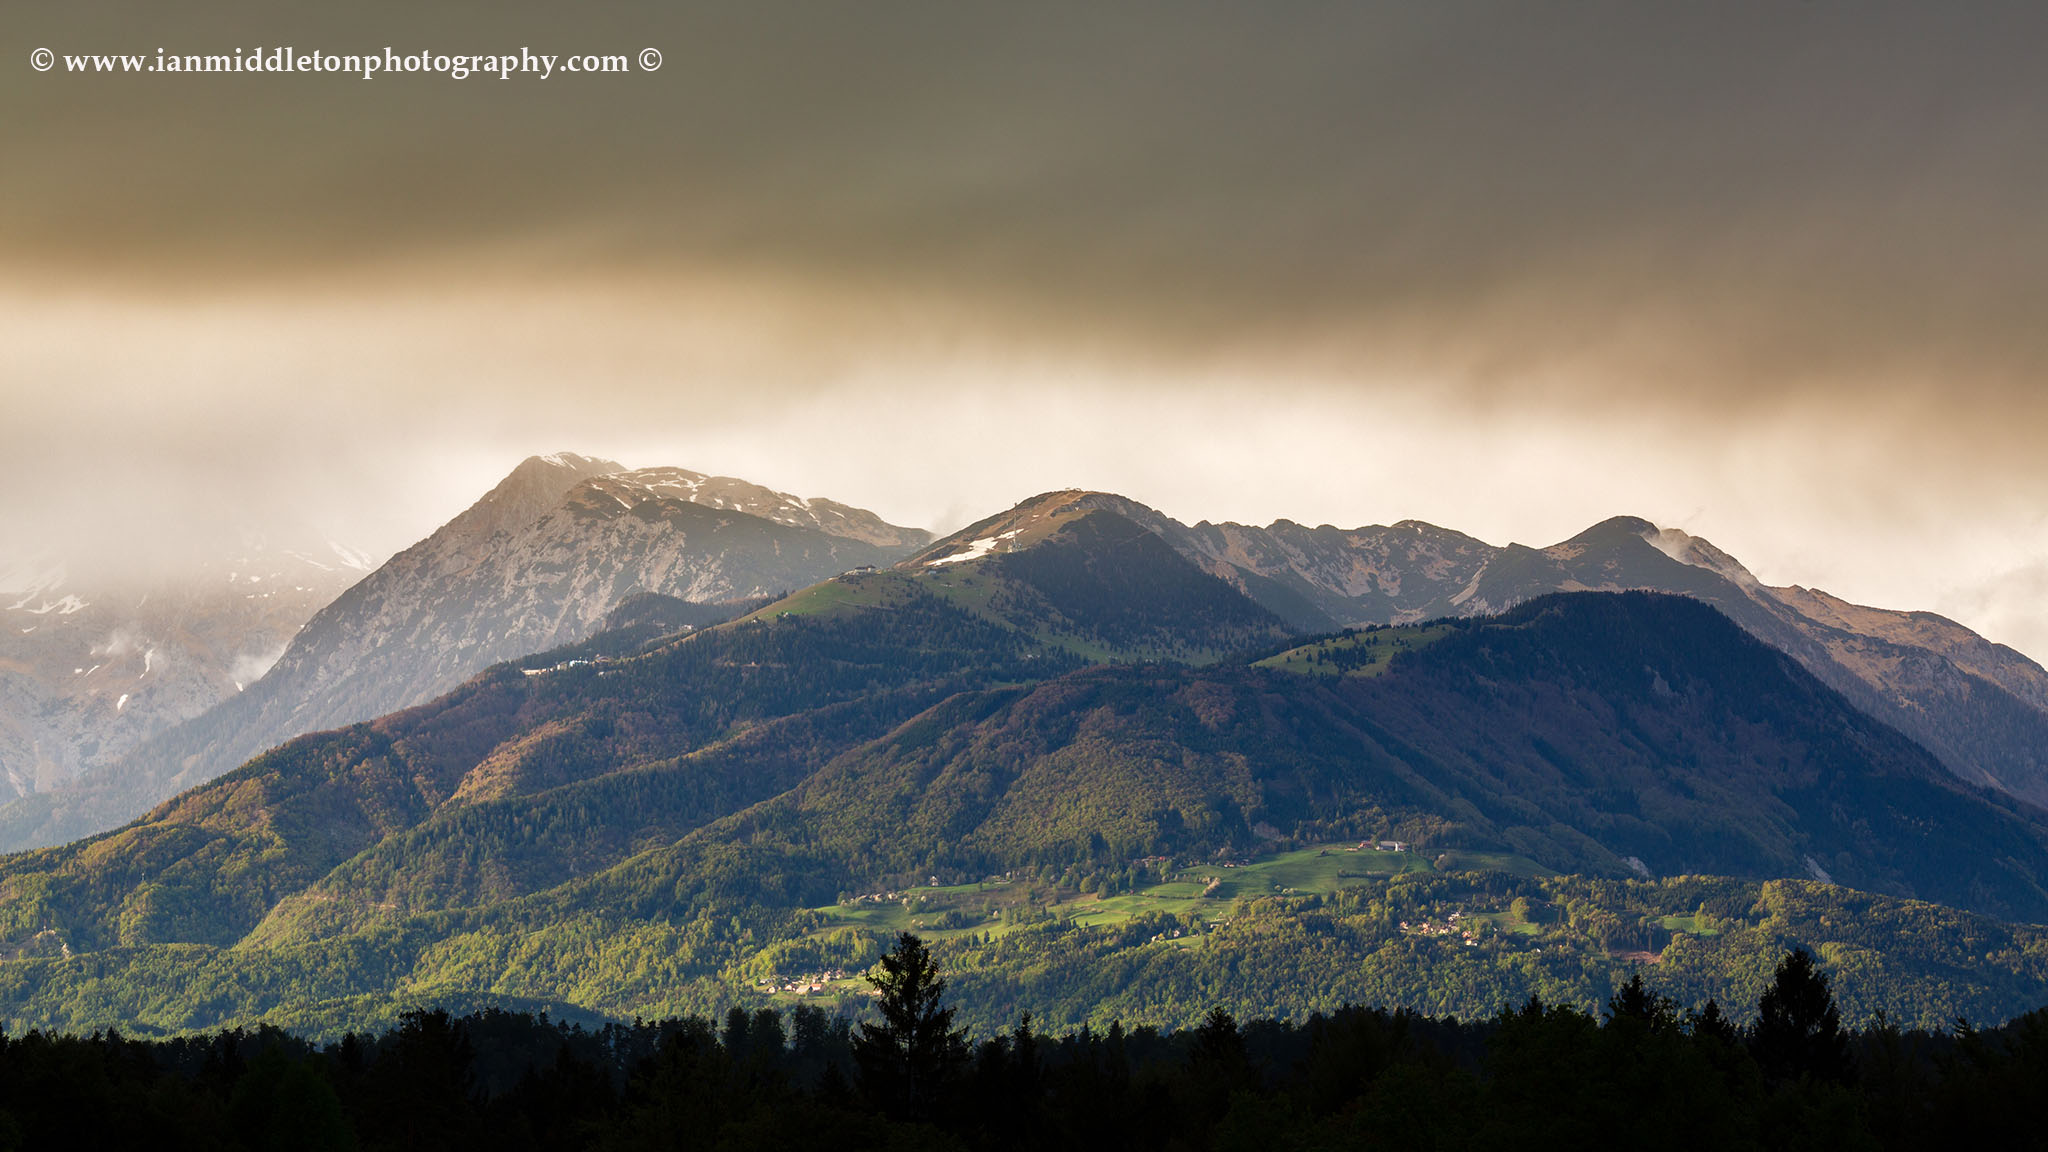 Kamnik Alps with Krvavec Ski as a storm passes over, Slovenia.